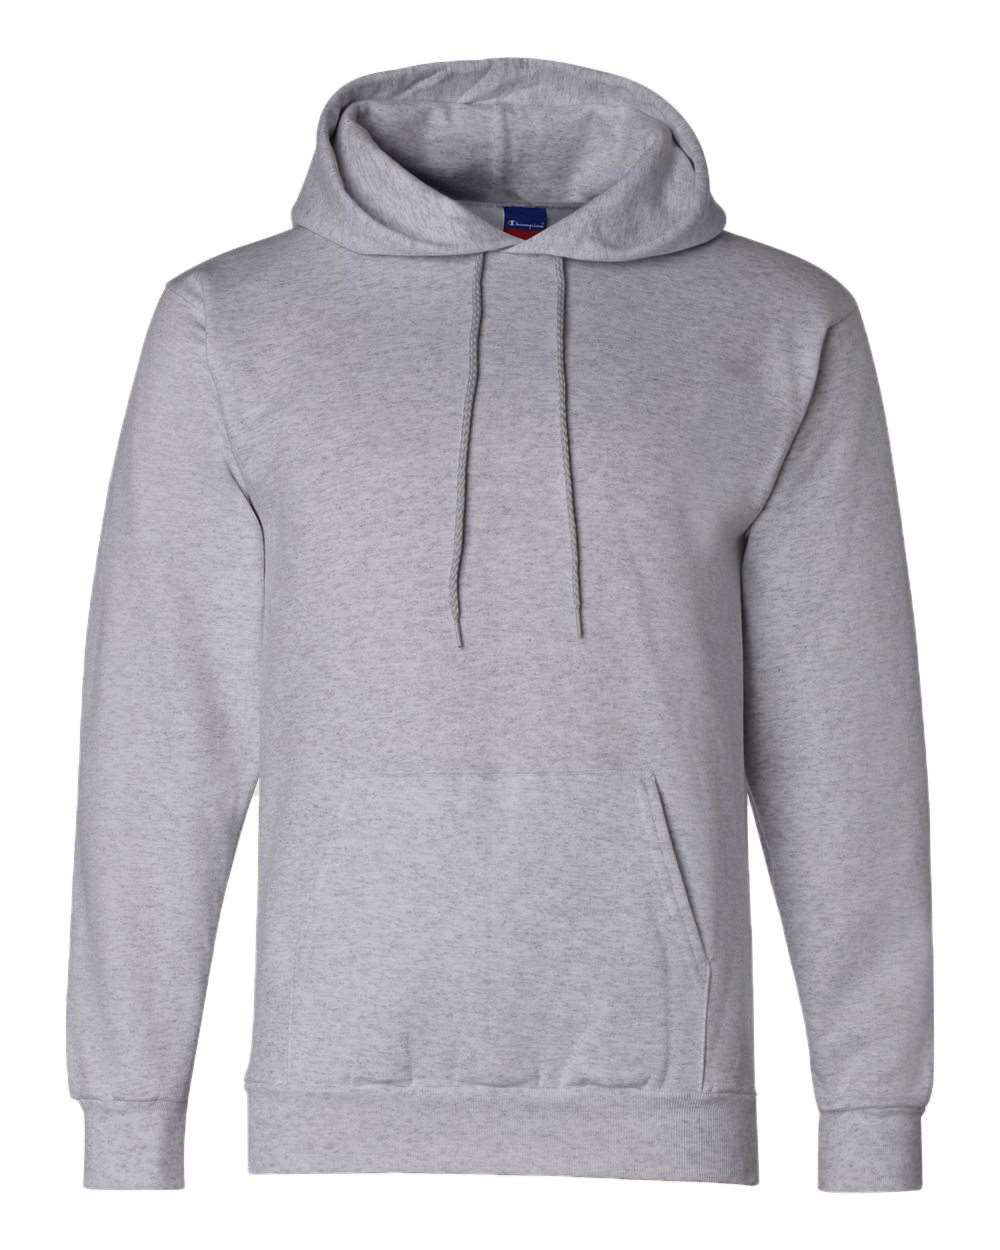 Champion-Mens-Double-Dry-Eco-Hooded-Sweatshirt-Hoodie-Pullover-S700-up-to-3XL miniature 18